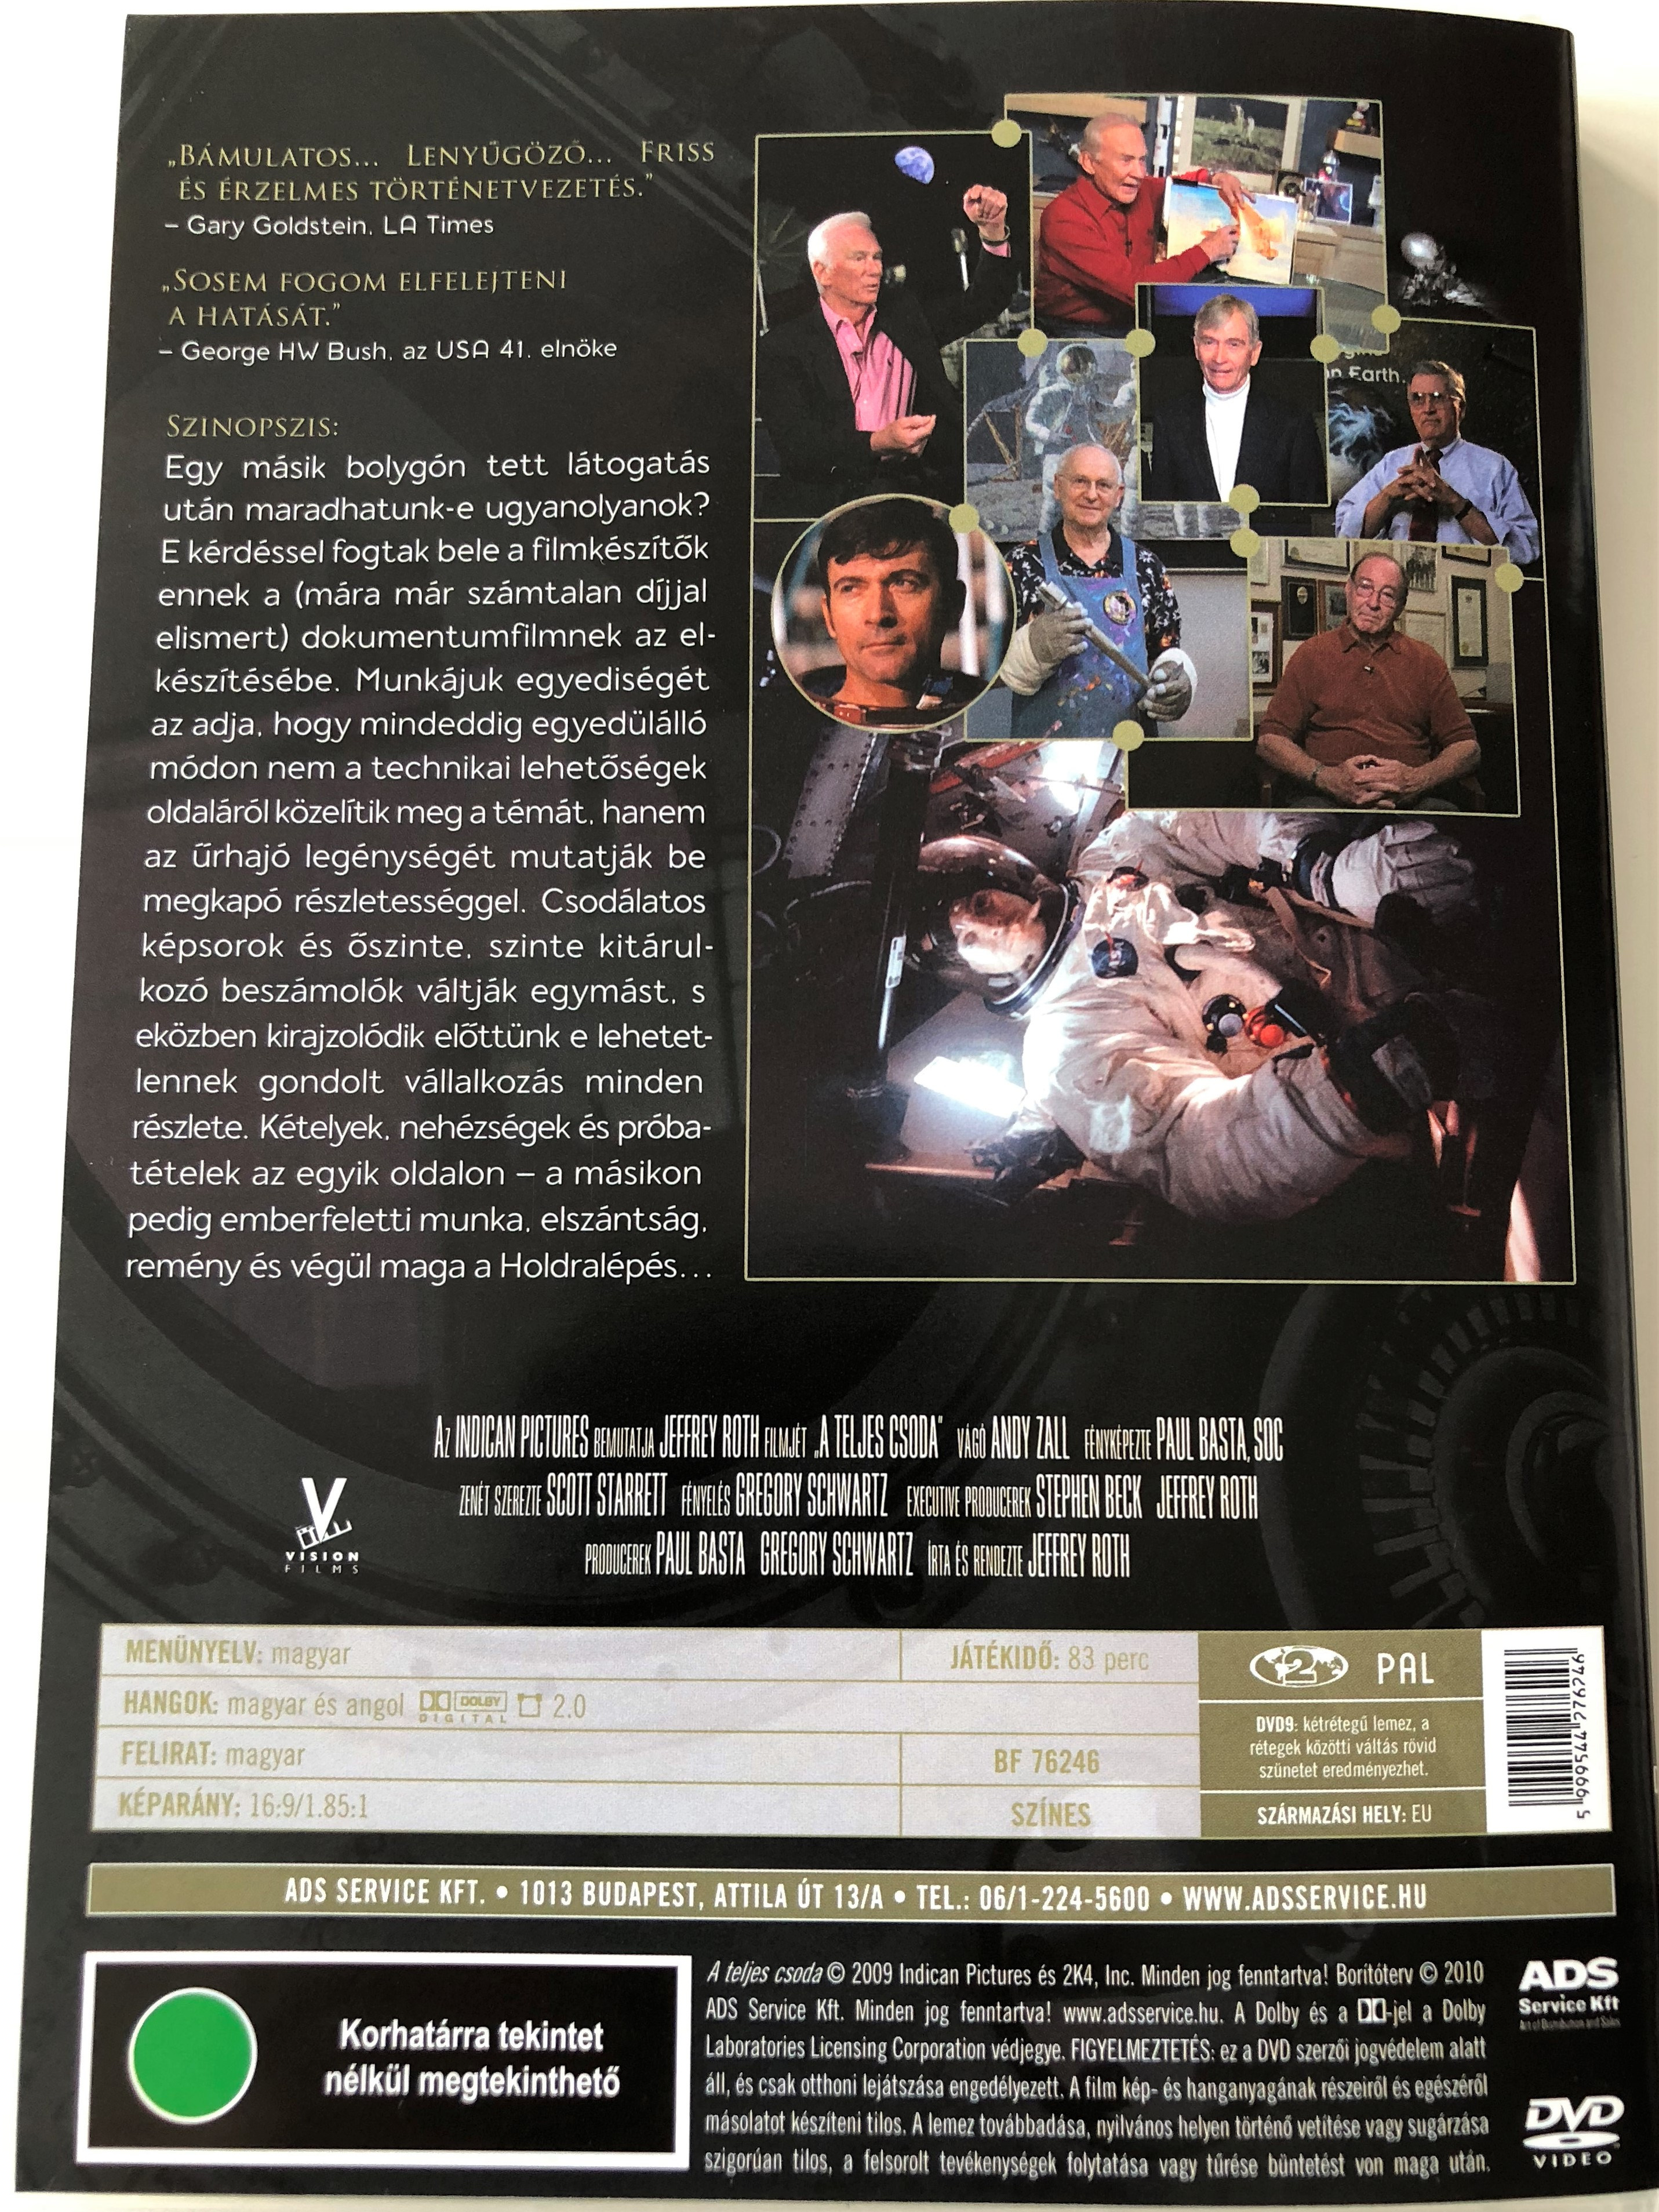 the-wonder-of-it-all-dvd-2007-a-teljes-csoda-directed-by-jeffrey-roth-documentary-interviews-with-7-of-the-12-apollo-astronauts-who-walked-on-the-moon-2-.jpg